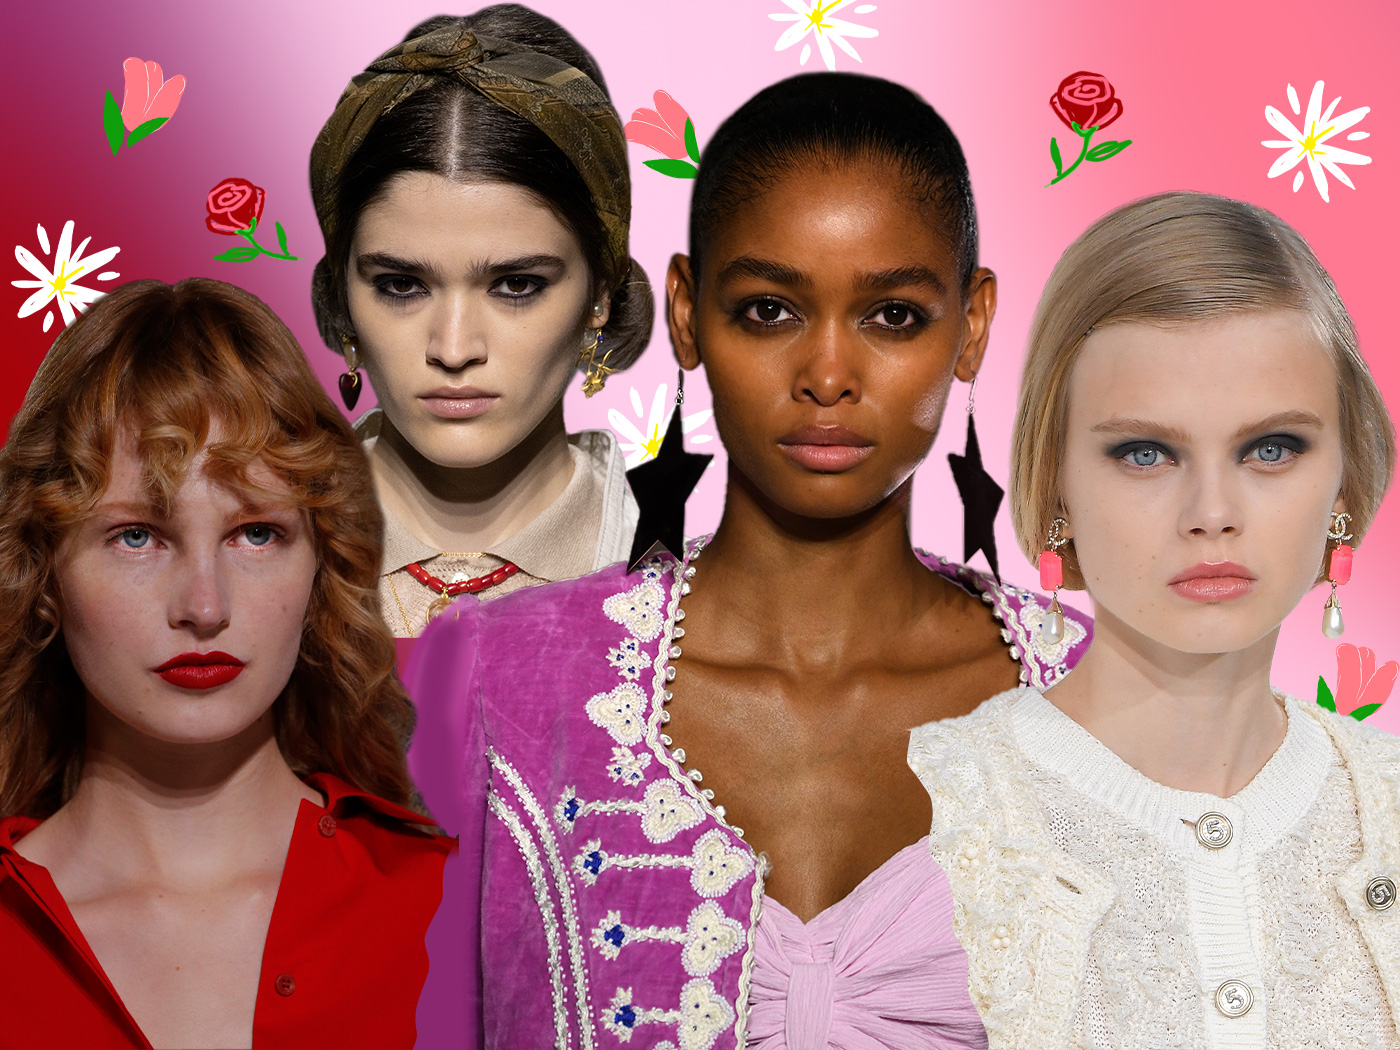 Spring has sprung! 9 ανοιξιάτικα beauty looks κατευθείαν από τις πασαρέλες